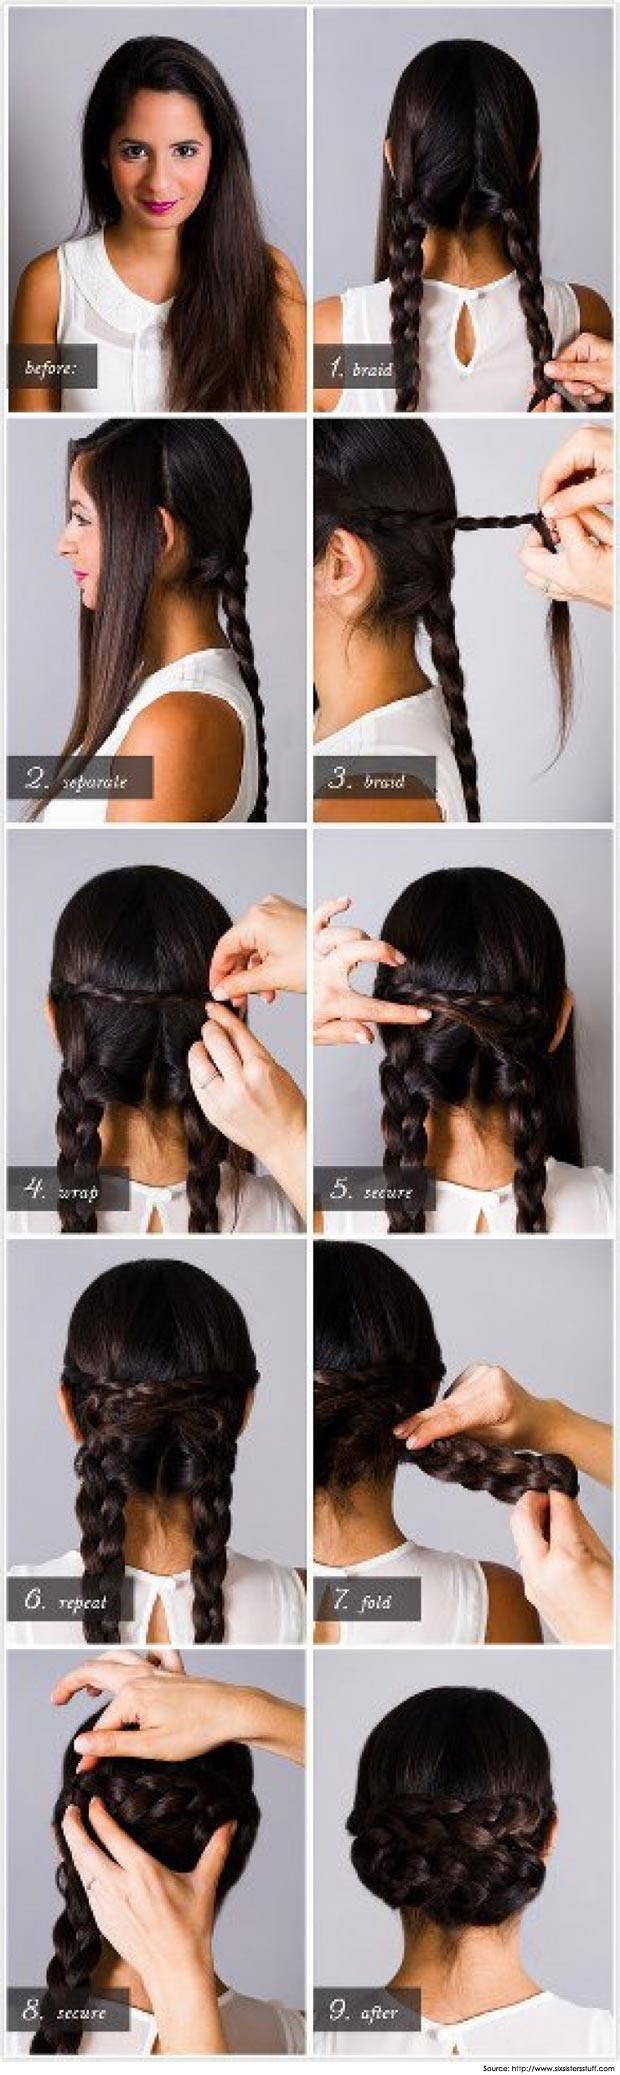 Braided Hairstyles And How To Do Them Hair Styles Long Hair Styles Hair